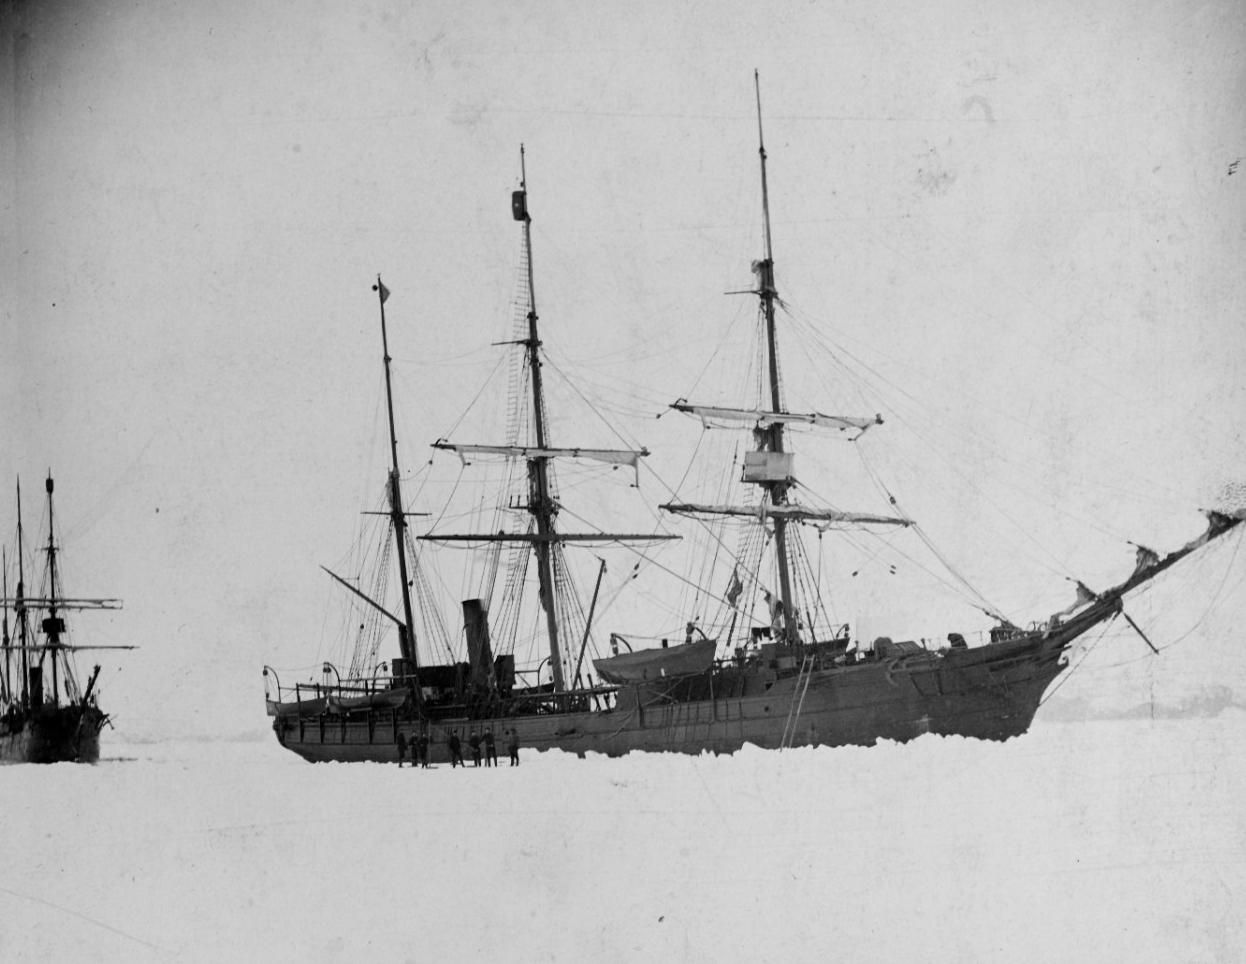 Greely Relief Expedition